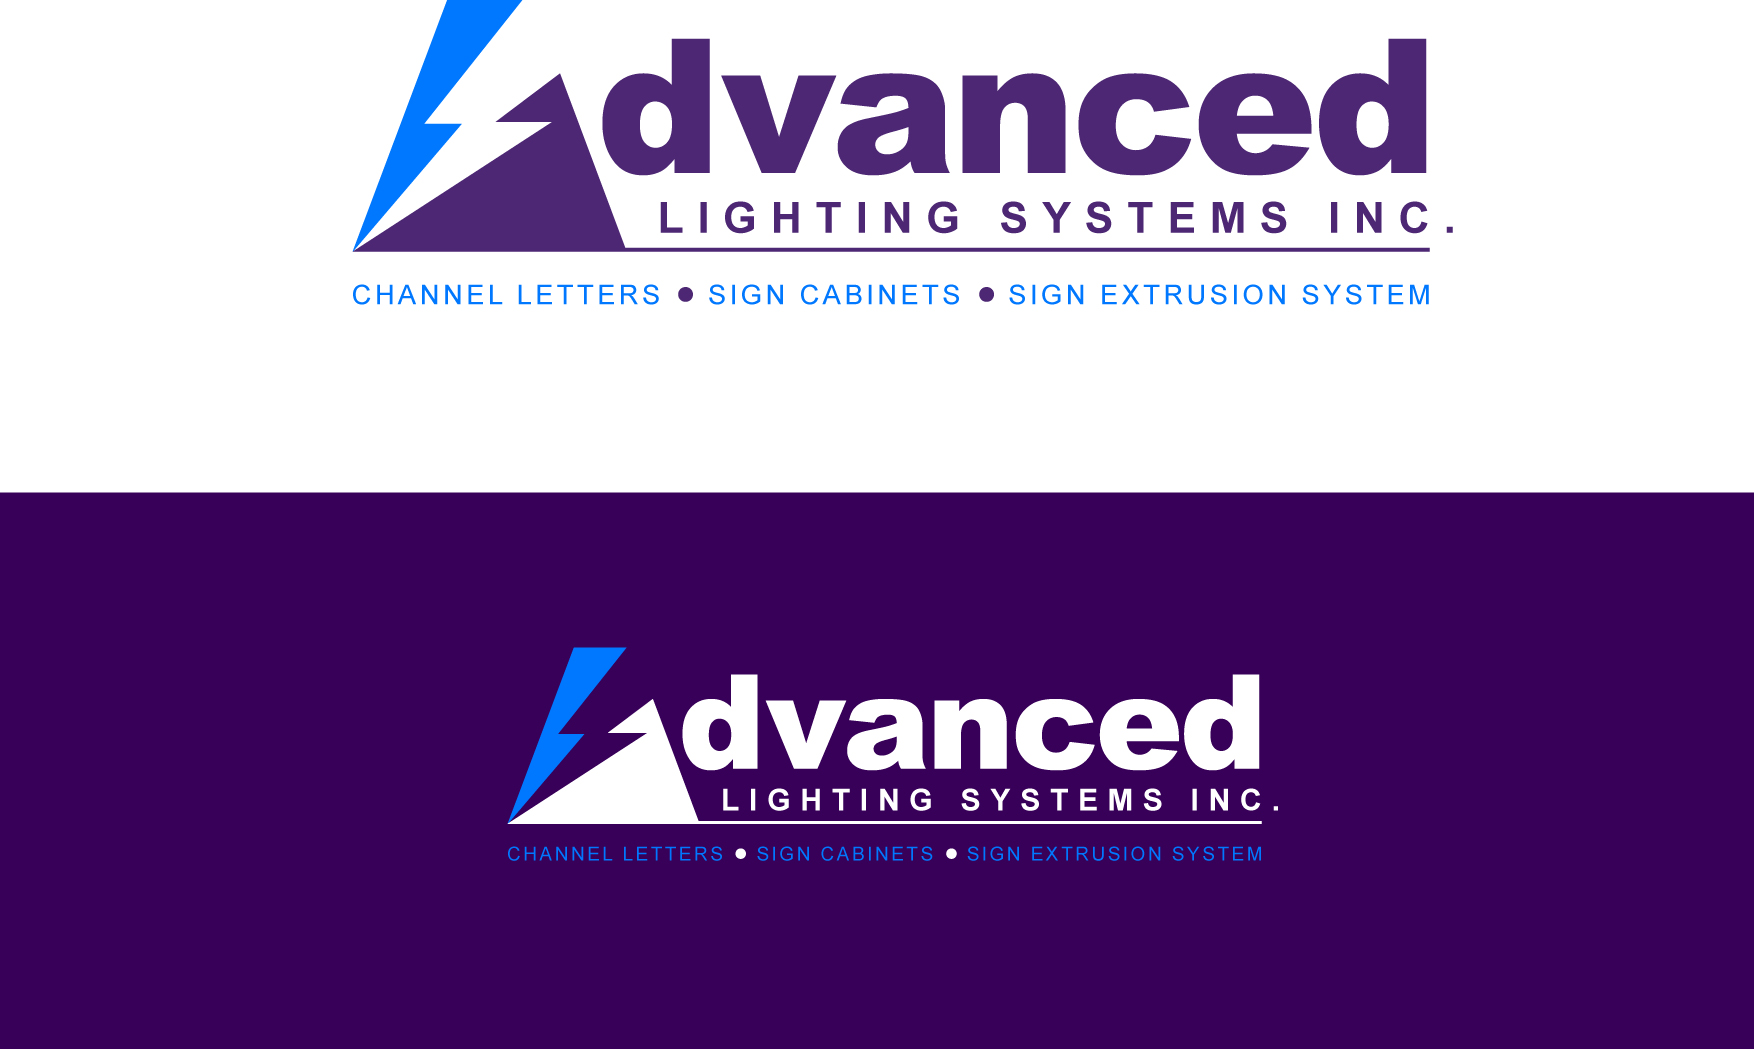 Logo Design by Wilfredo Mendoza - Entry No. 170 in the Logo Design Contest New Logo Design Needed for  Company Advanced Lighting Systems Inc..